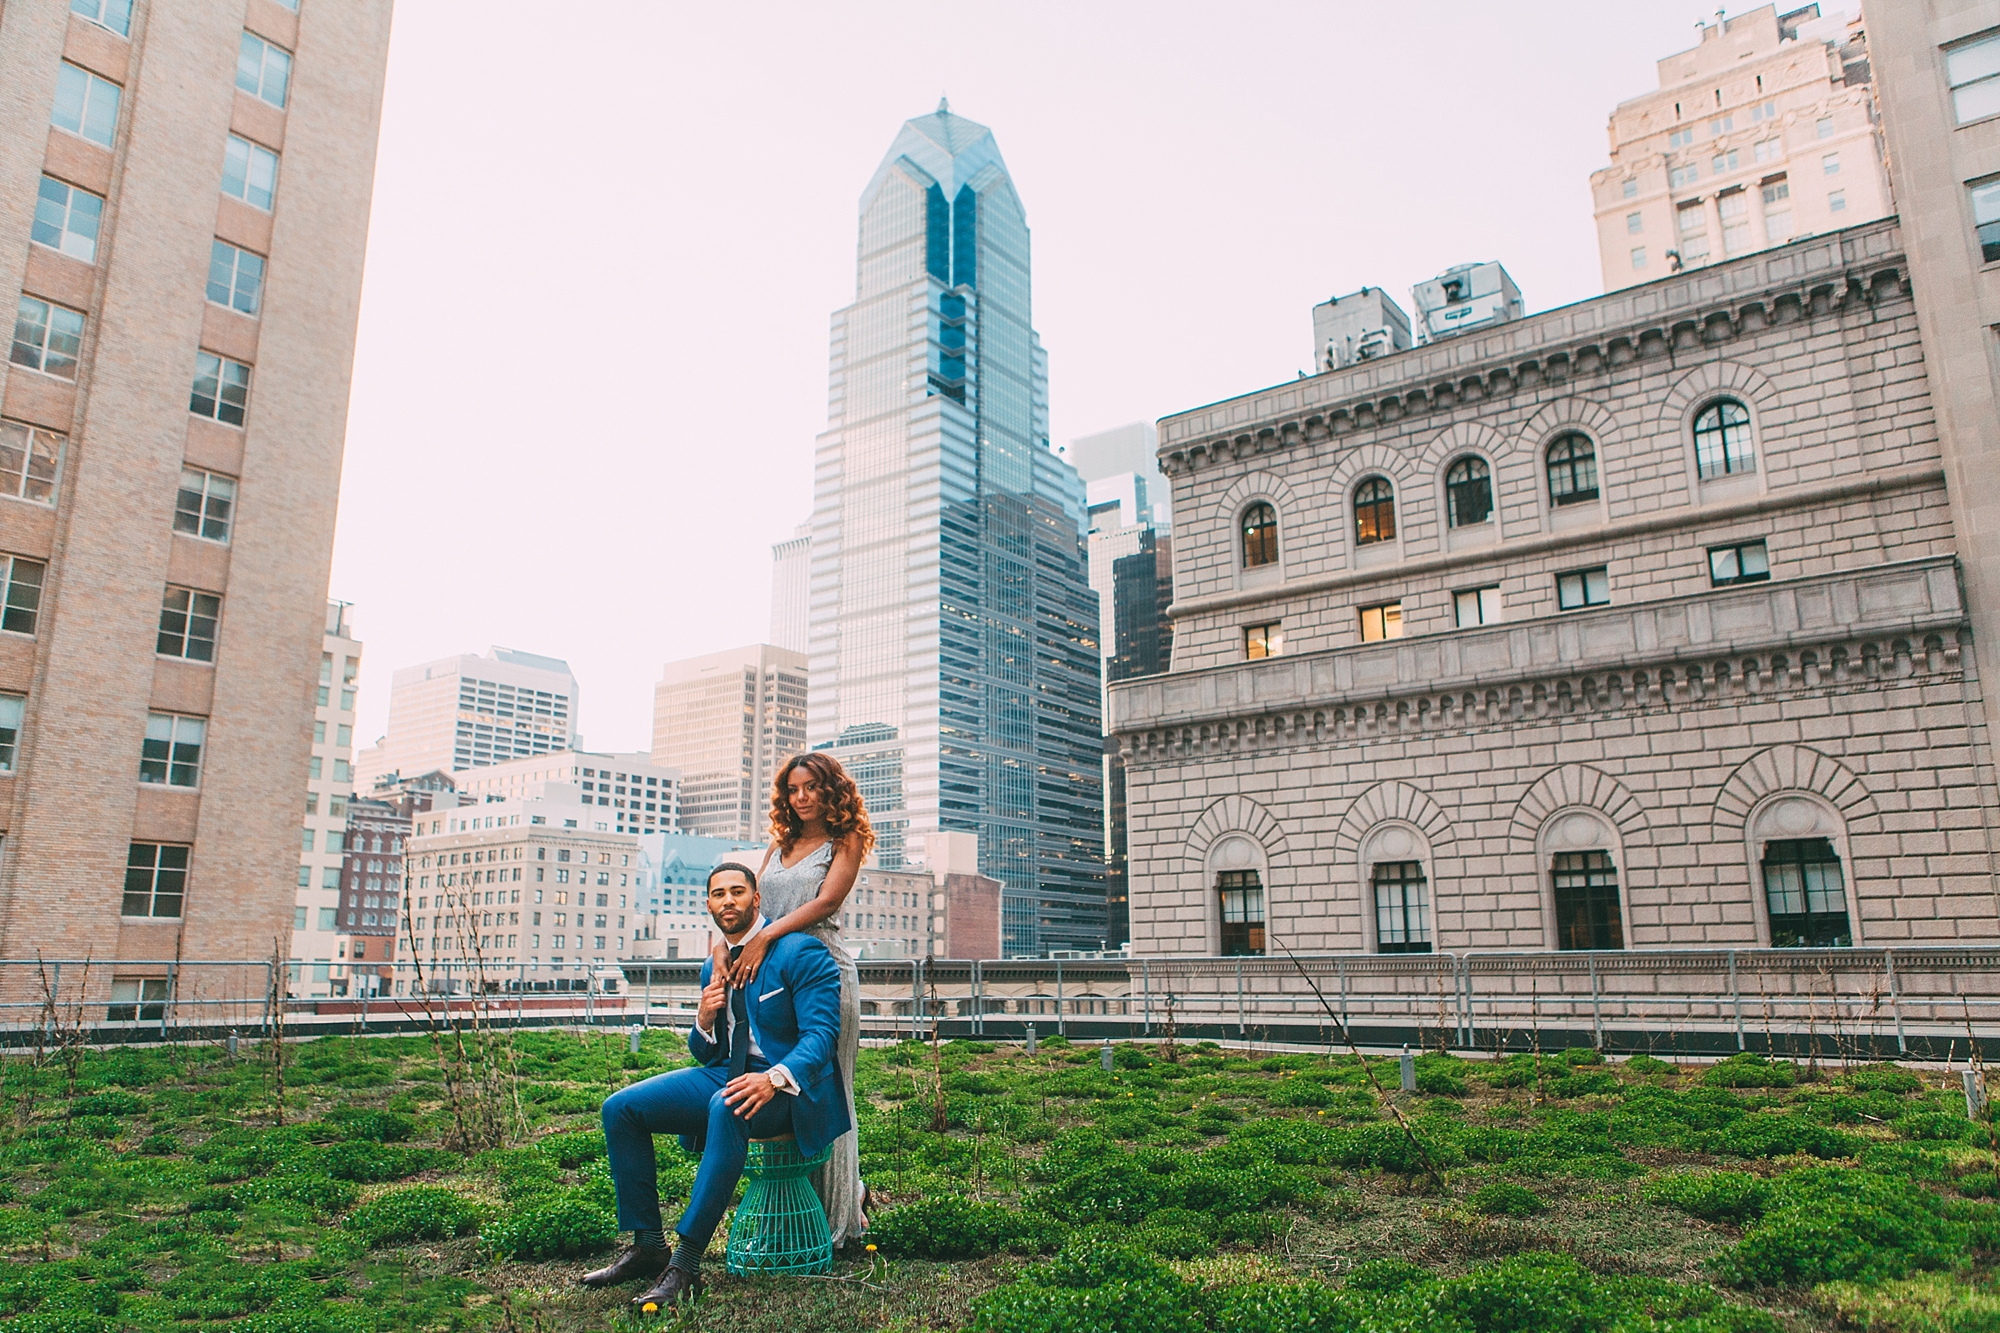 Joe_Mac_Creative_Wedding_Engagements_Photography_Philadelphia_Broad_Street_Proposal_0027.jpg